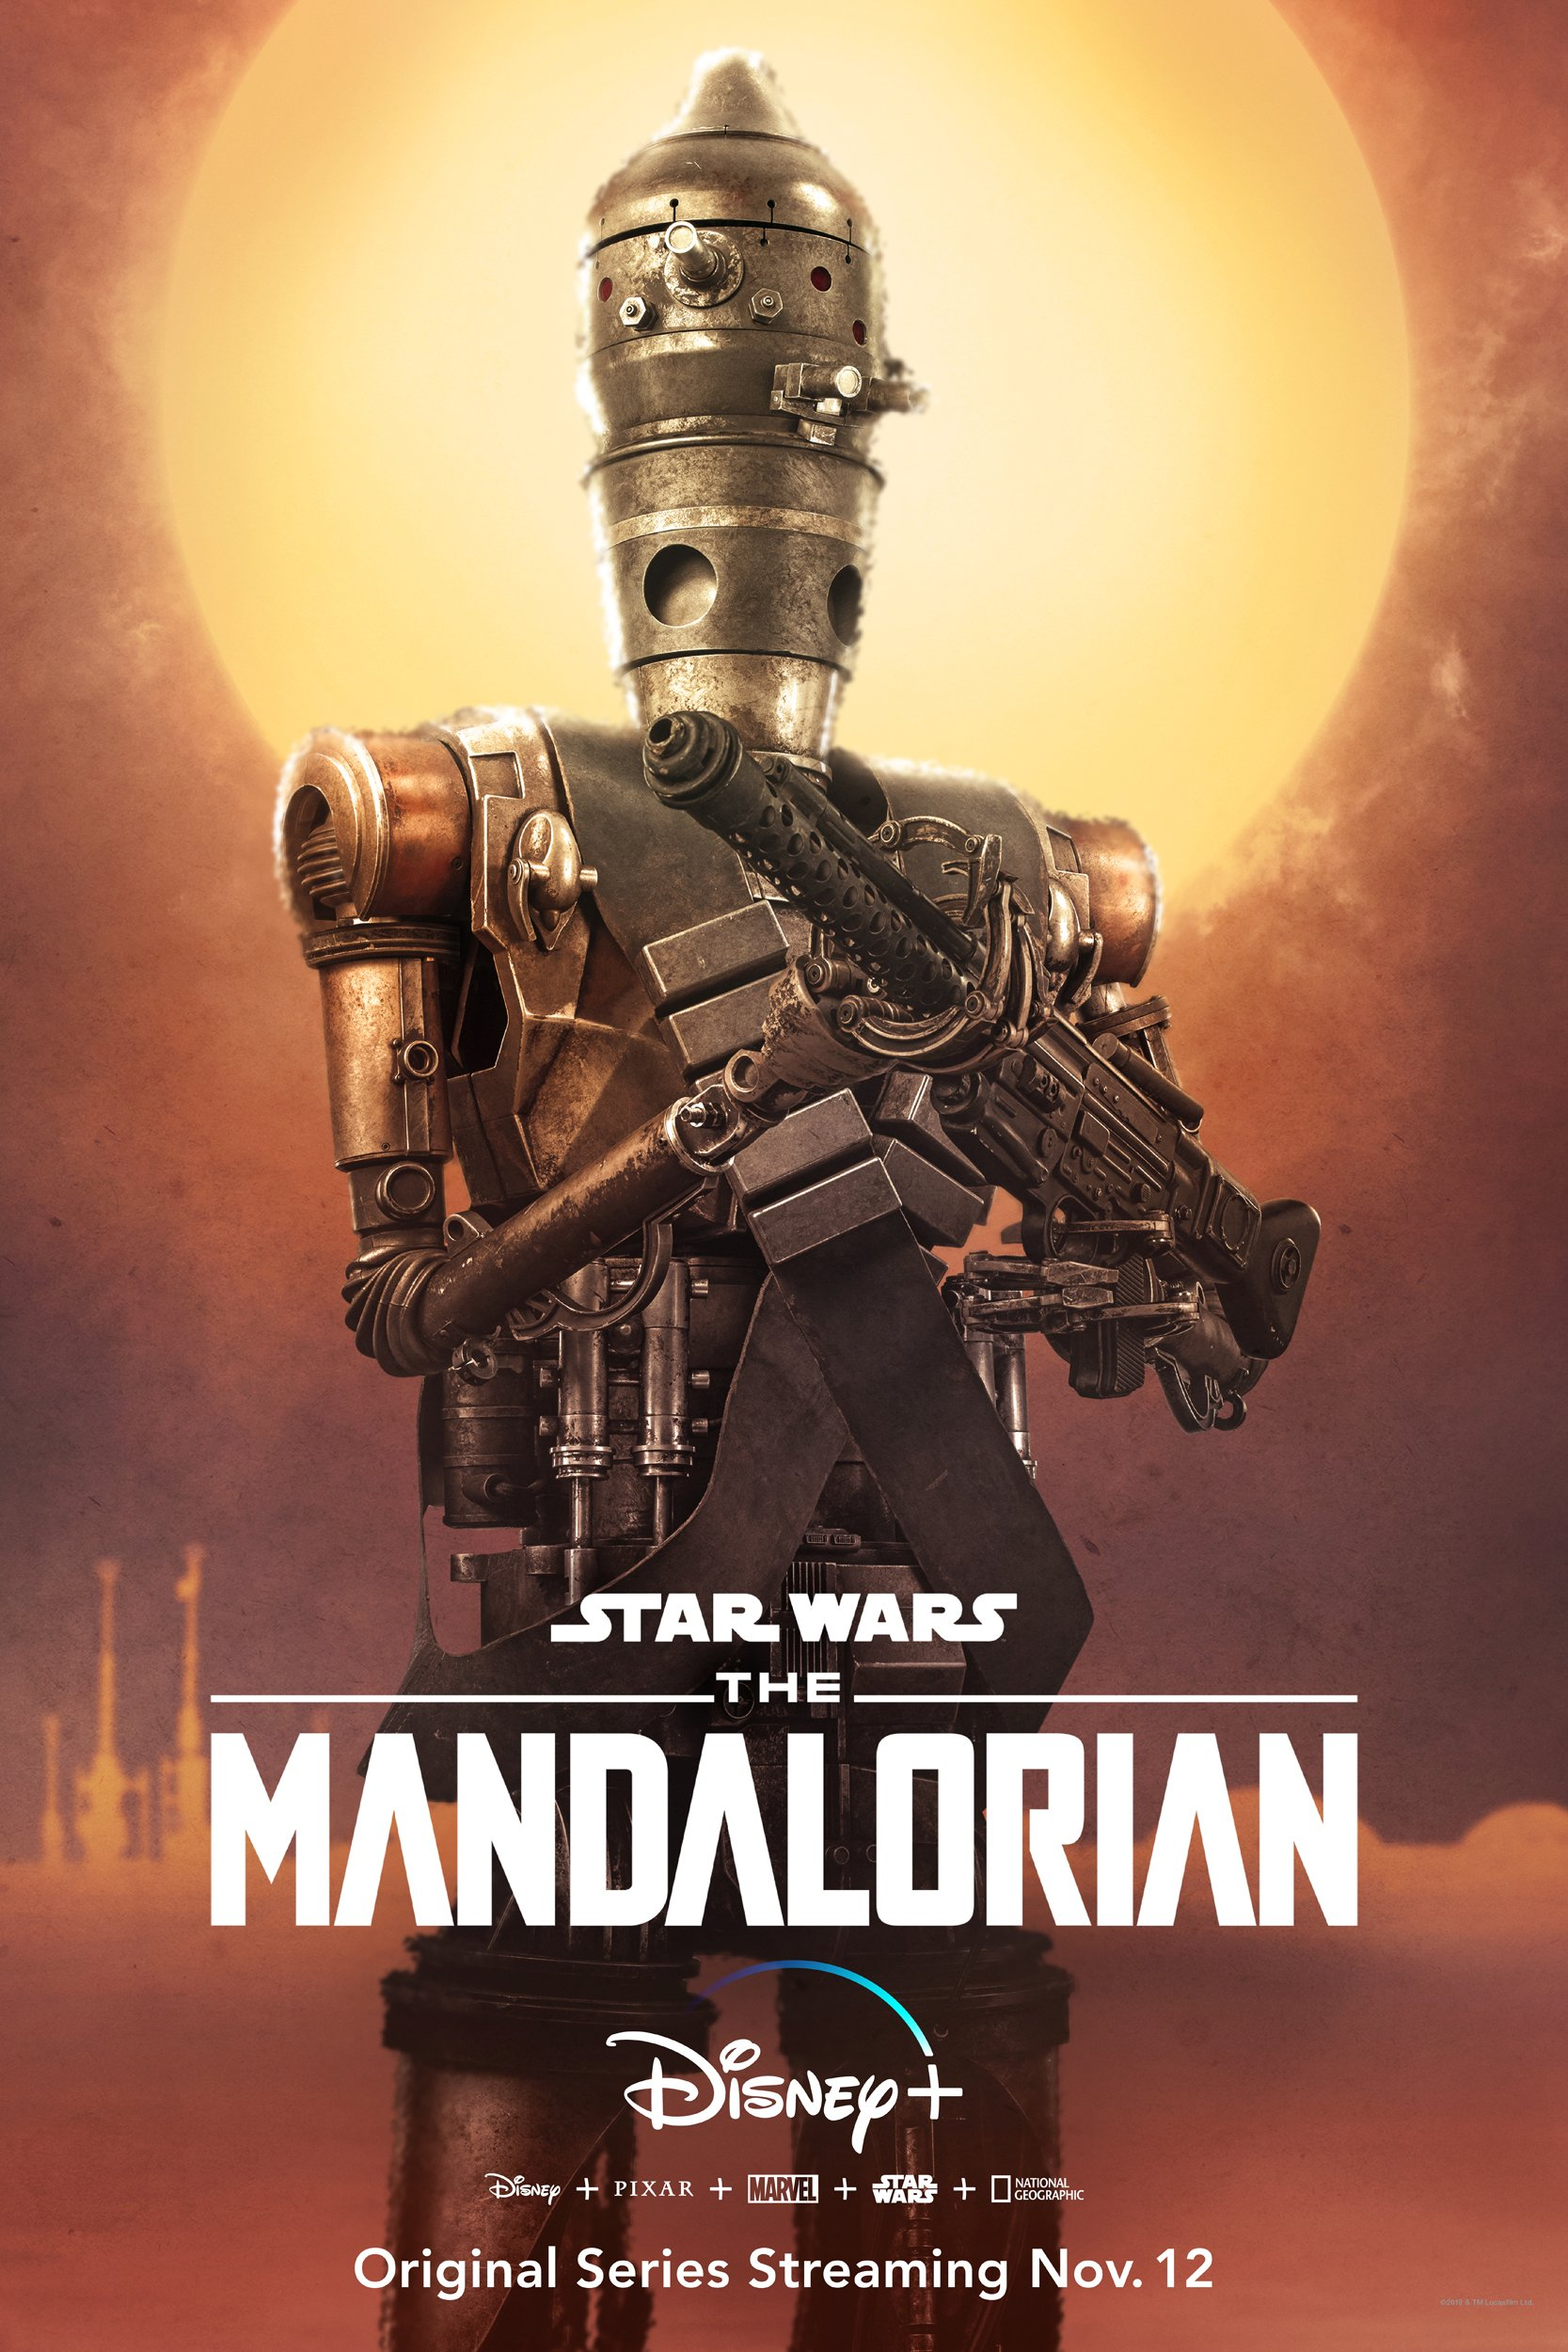 The Mandalorian - IG-11 Poster